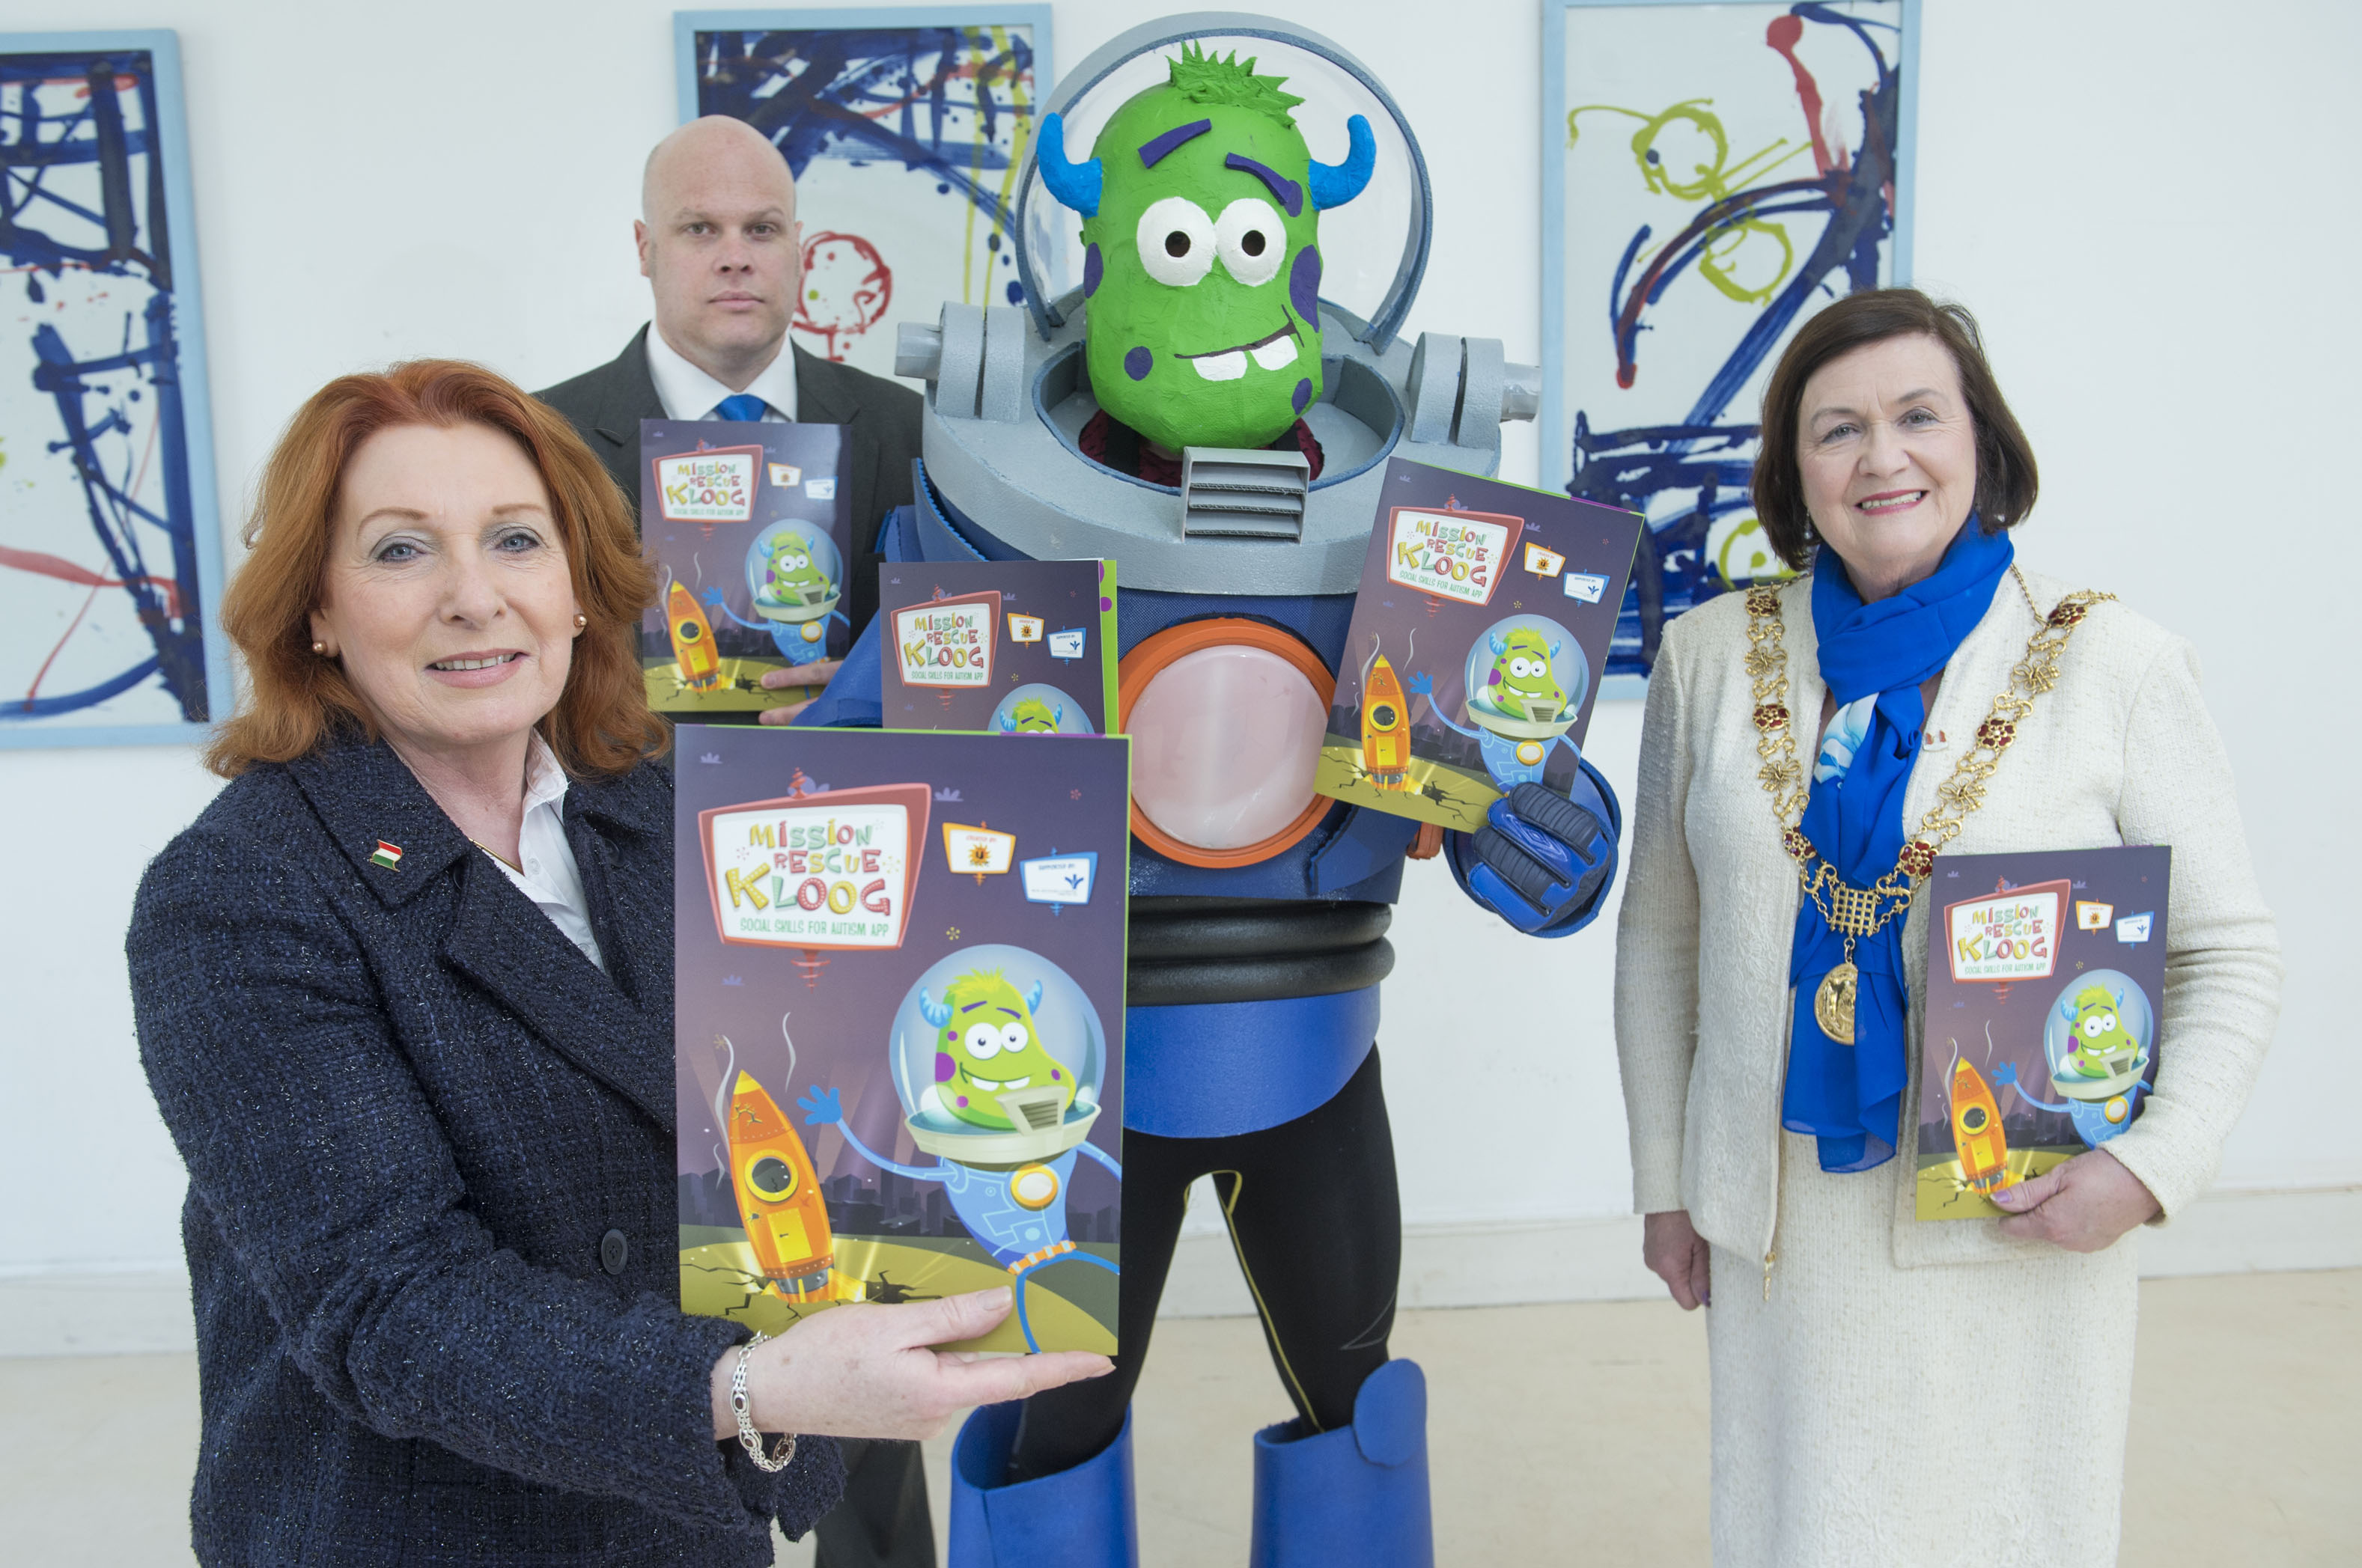 Lord Mayor of Cork Launches Social Skills App